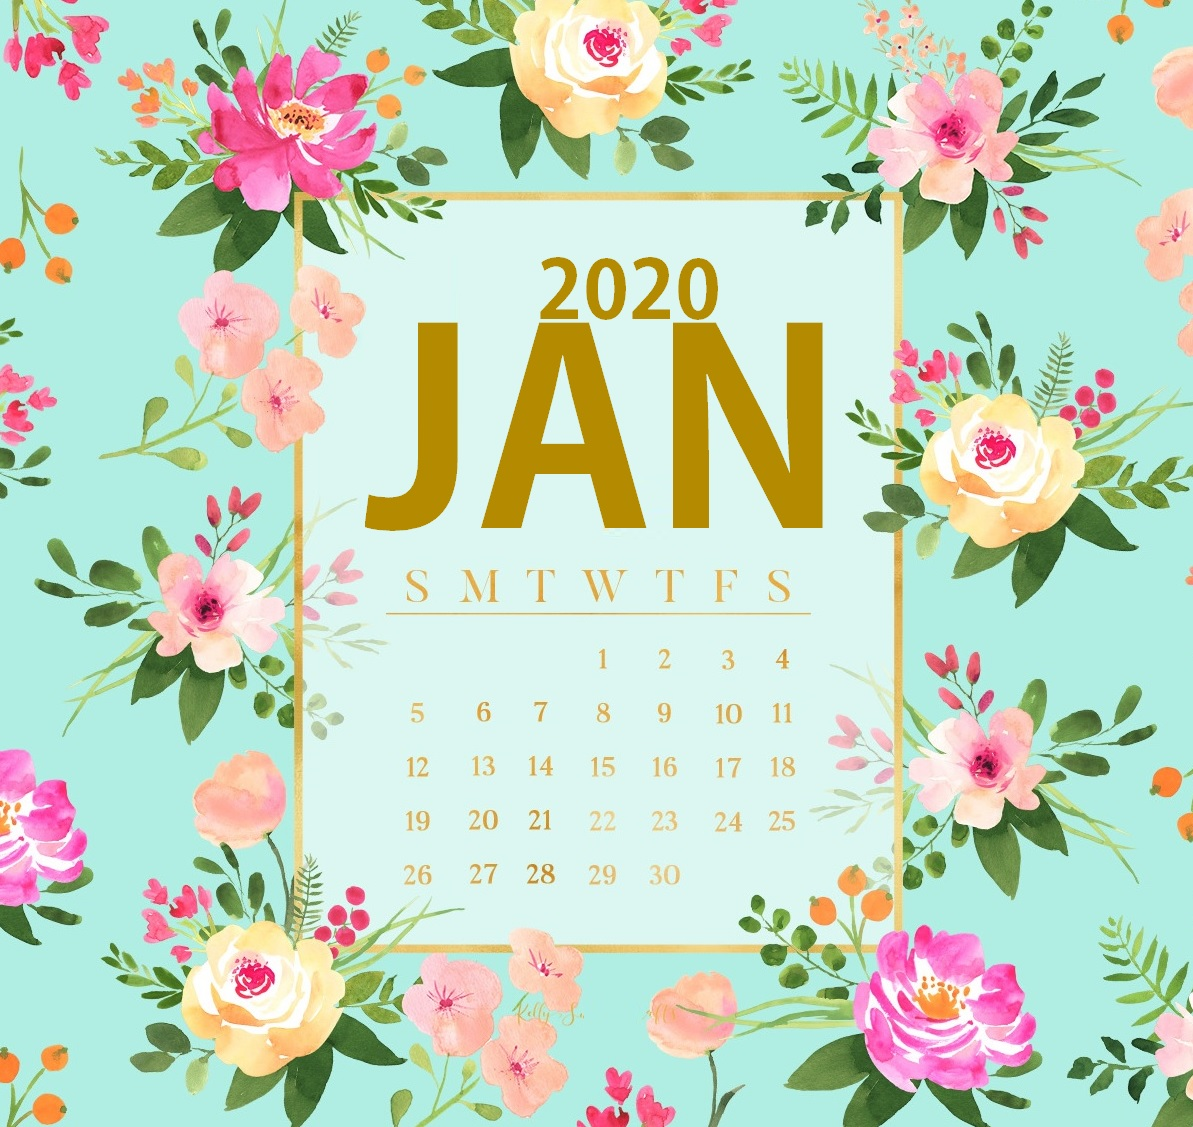 iPhone January 2020 Wallpaper Calendar Latest Calendar 1193x1127